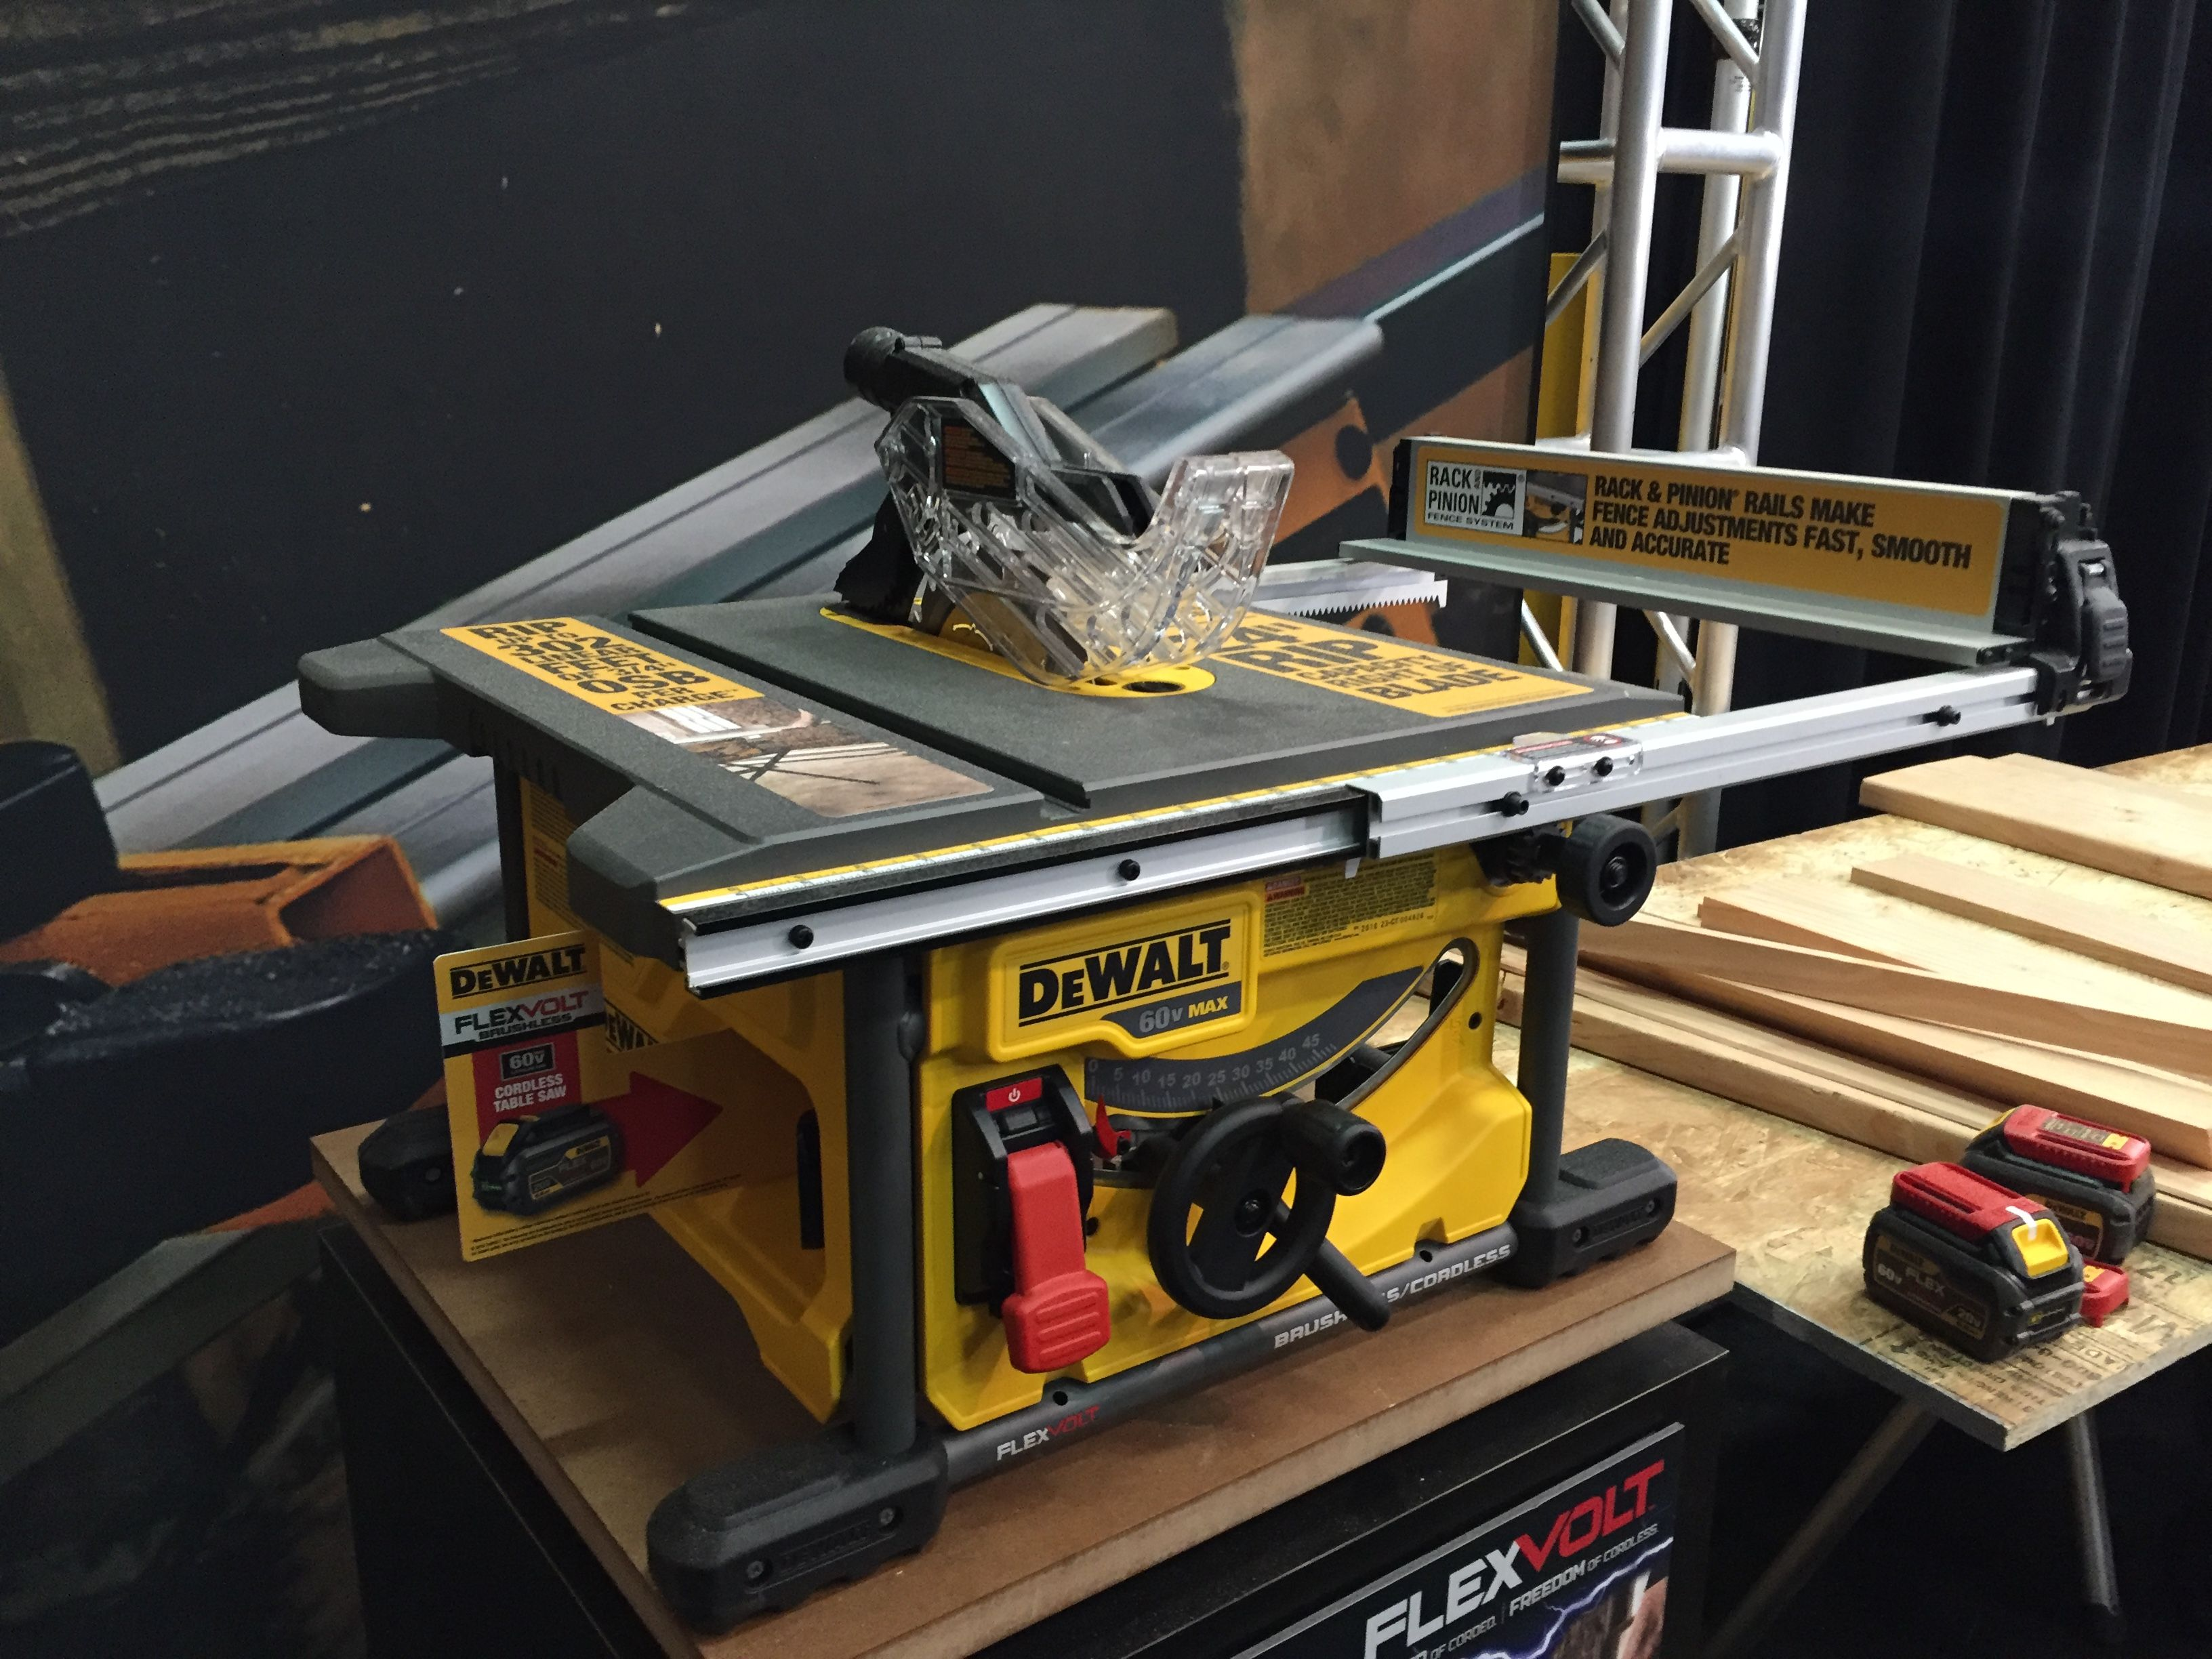 table inch saws the with tool nut stand jobsite dewalt wheeled tools saw tablesaw rolling power